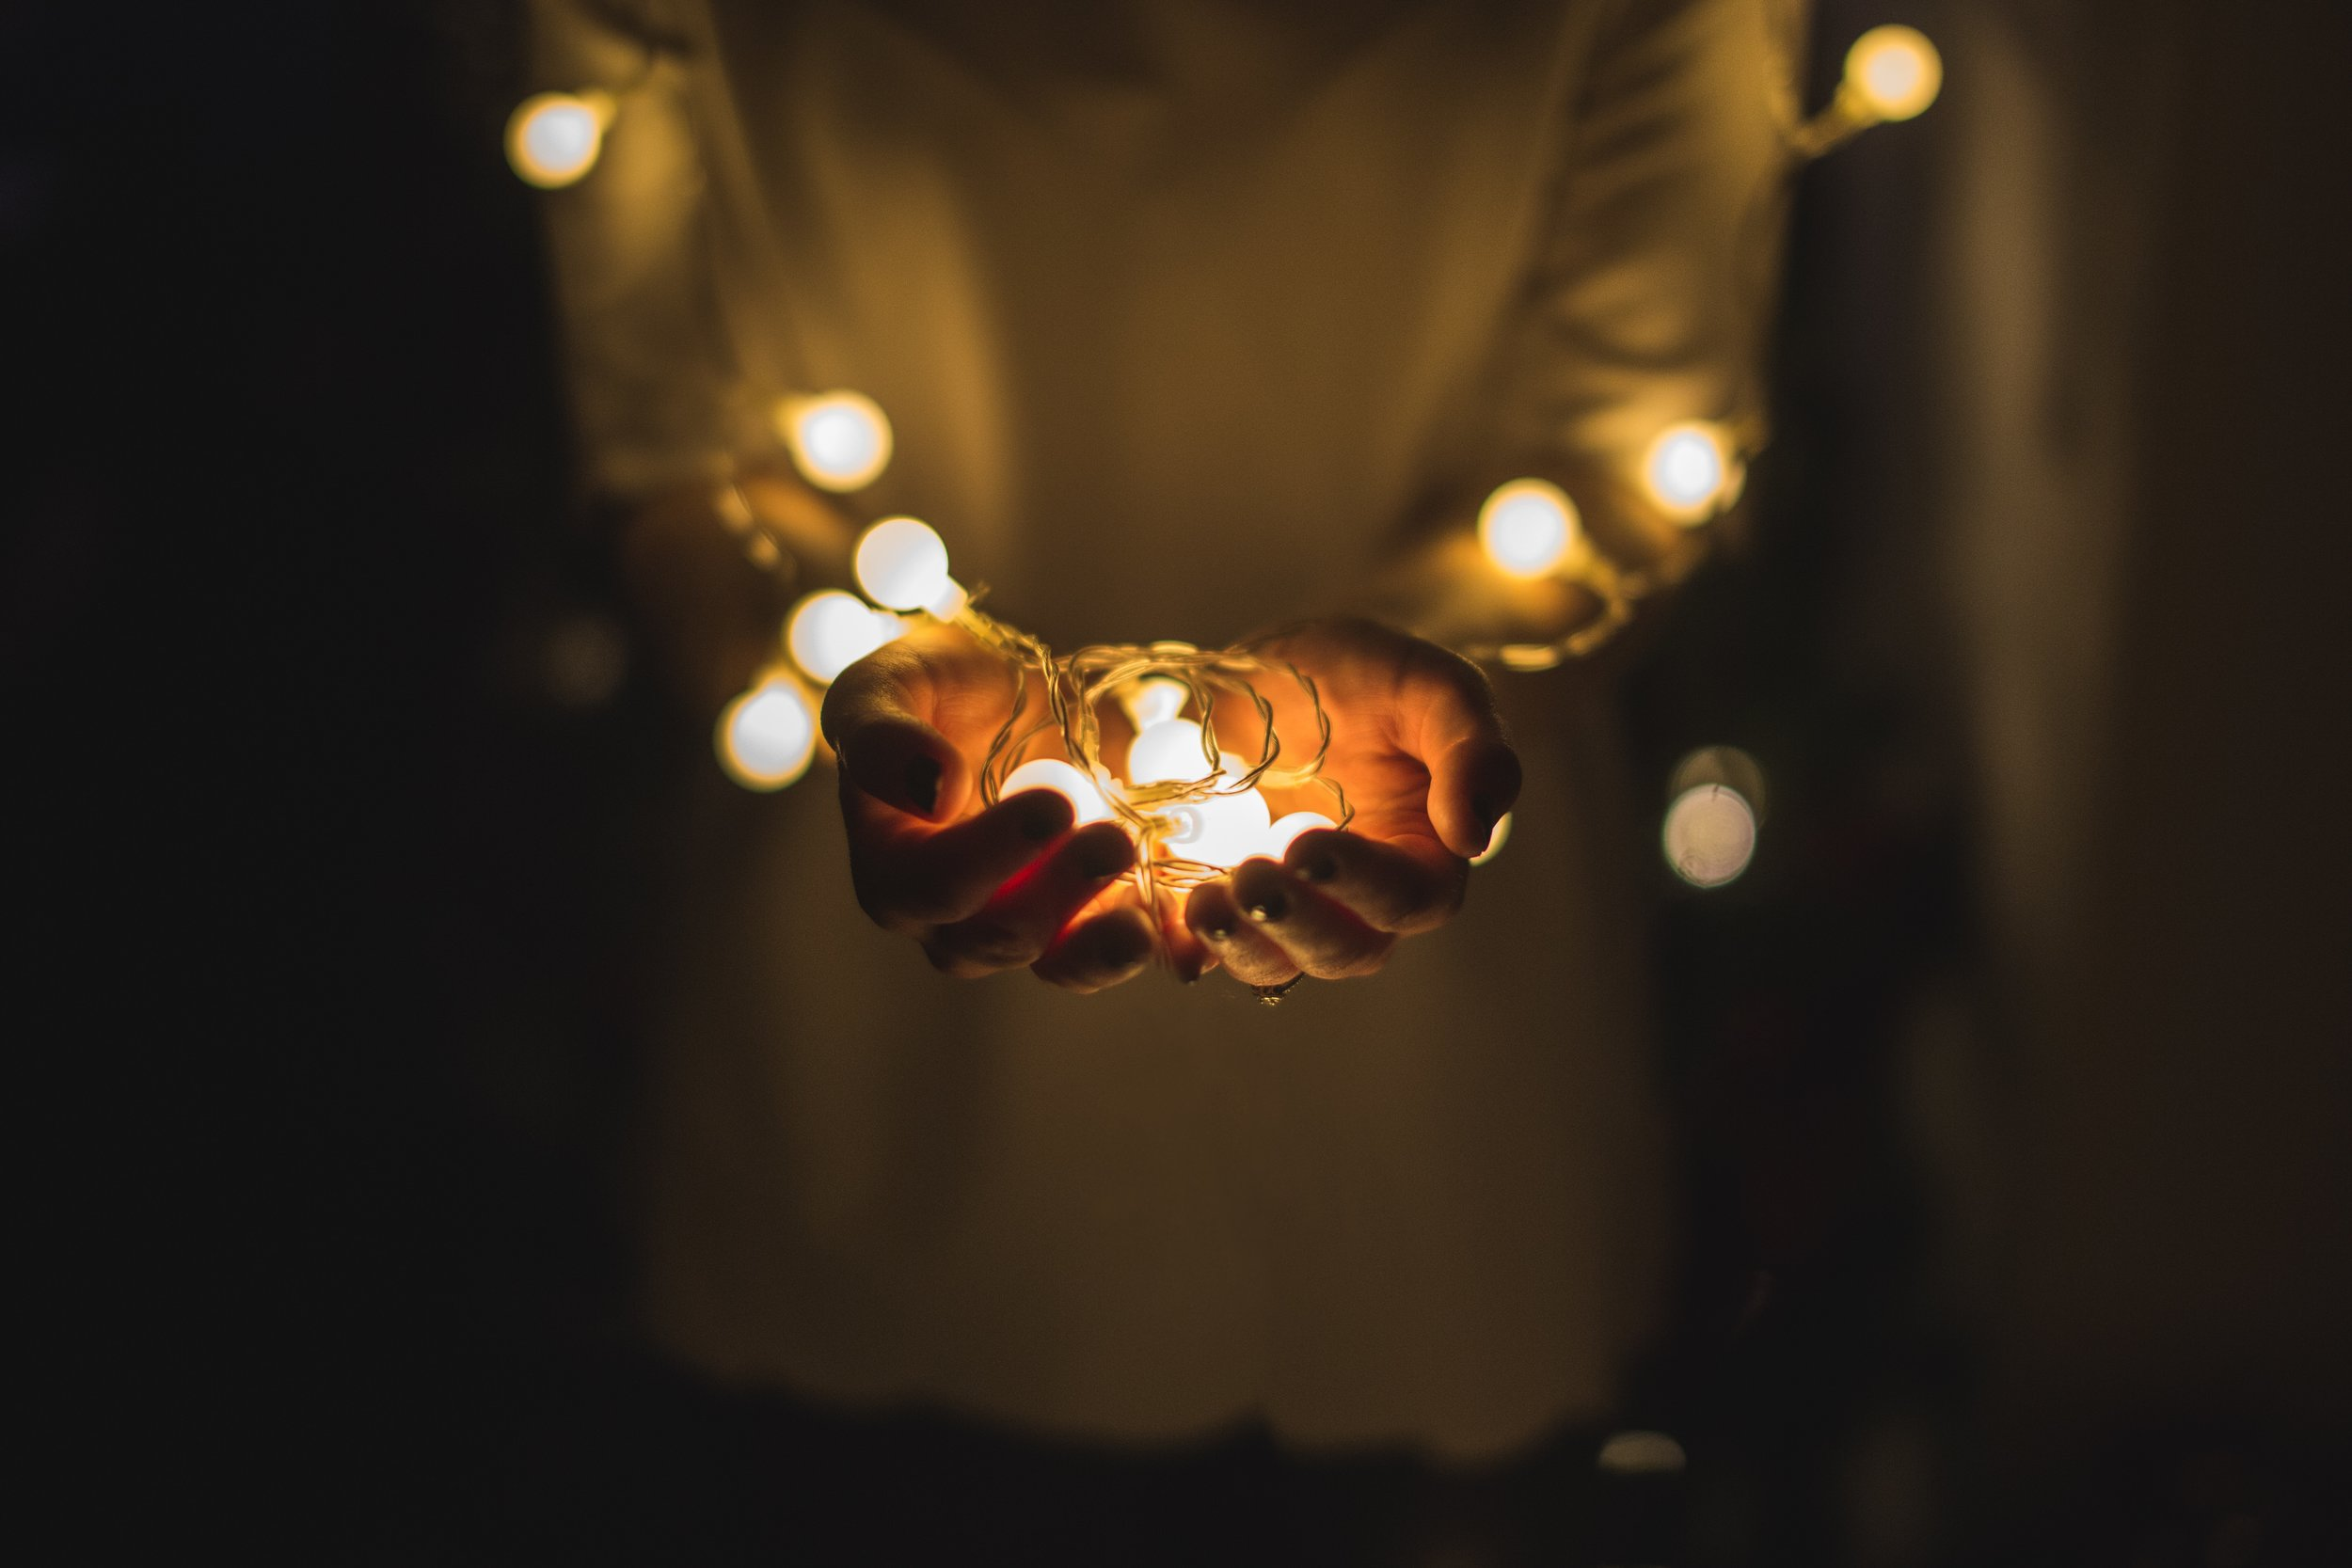 Make a Donation In Their Name - With so many people in need, the most meaningful gift is a donation in their name to a charity that's important to them. Charity Navigator helps you find causes that put funds to the best use.